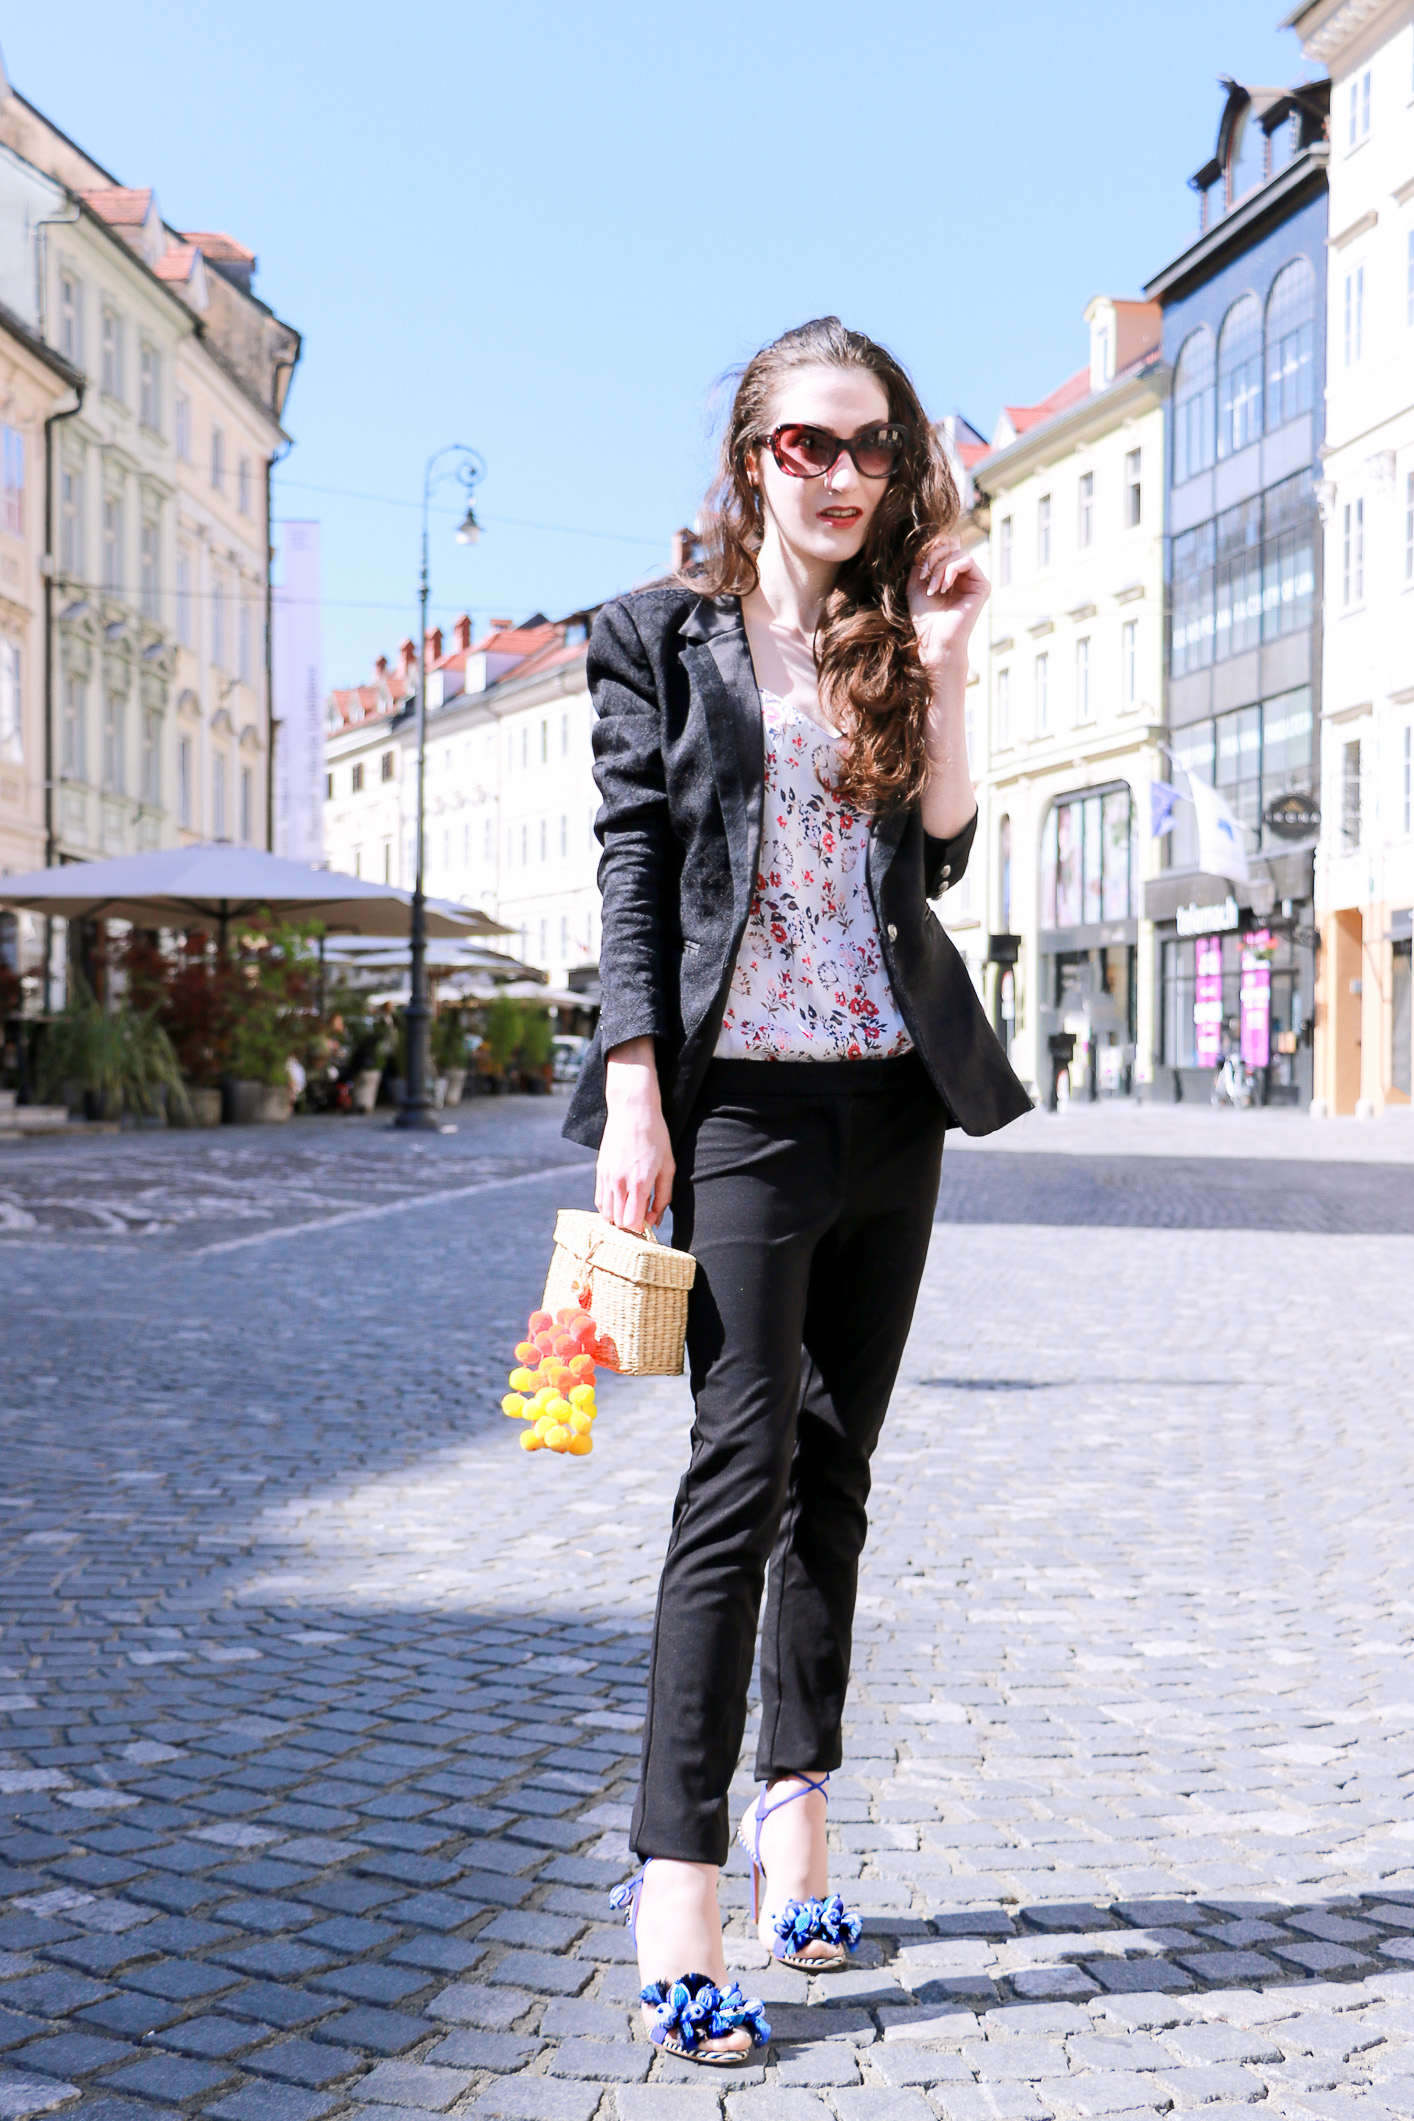 Fashion blogger Veronika Lipar of Brunette From Wall Street sharing what to wear to work this season to look fashionable